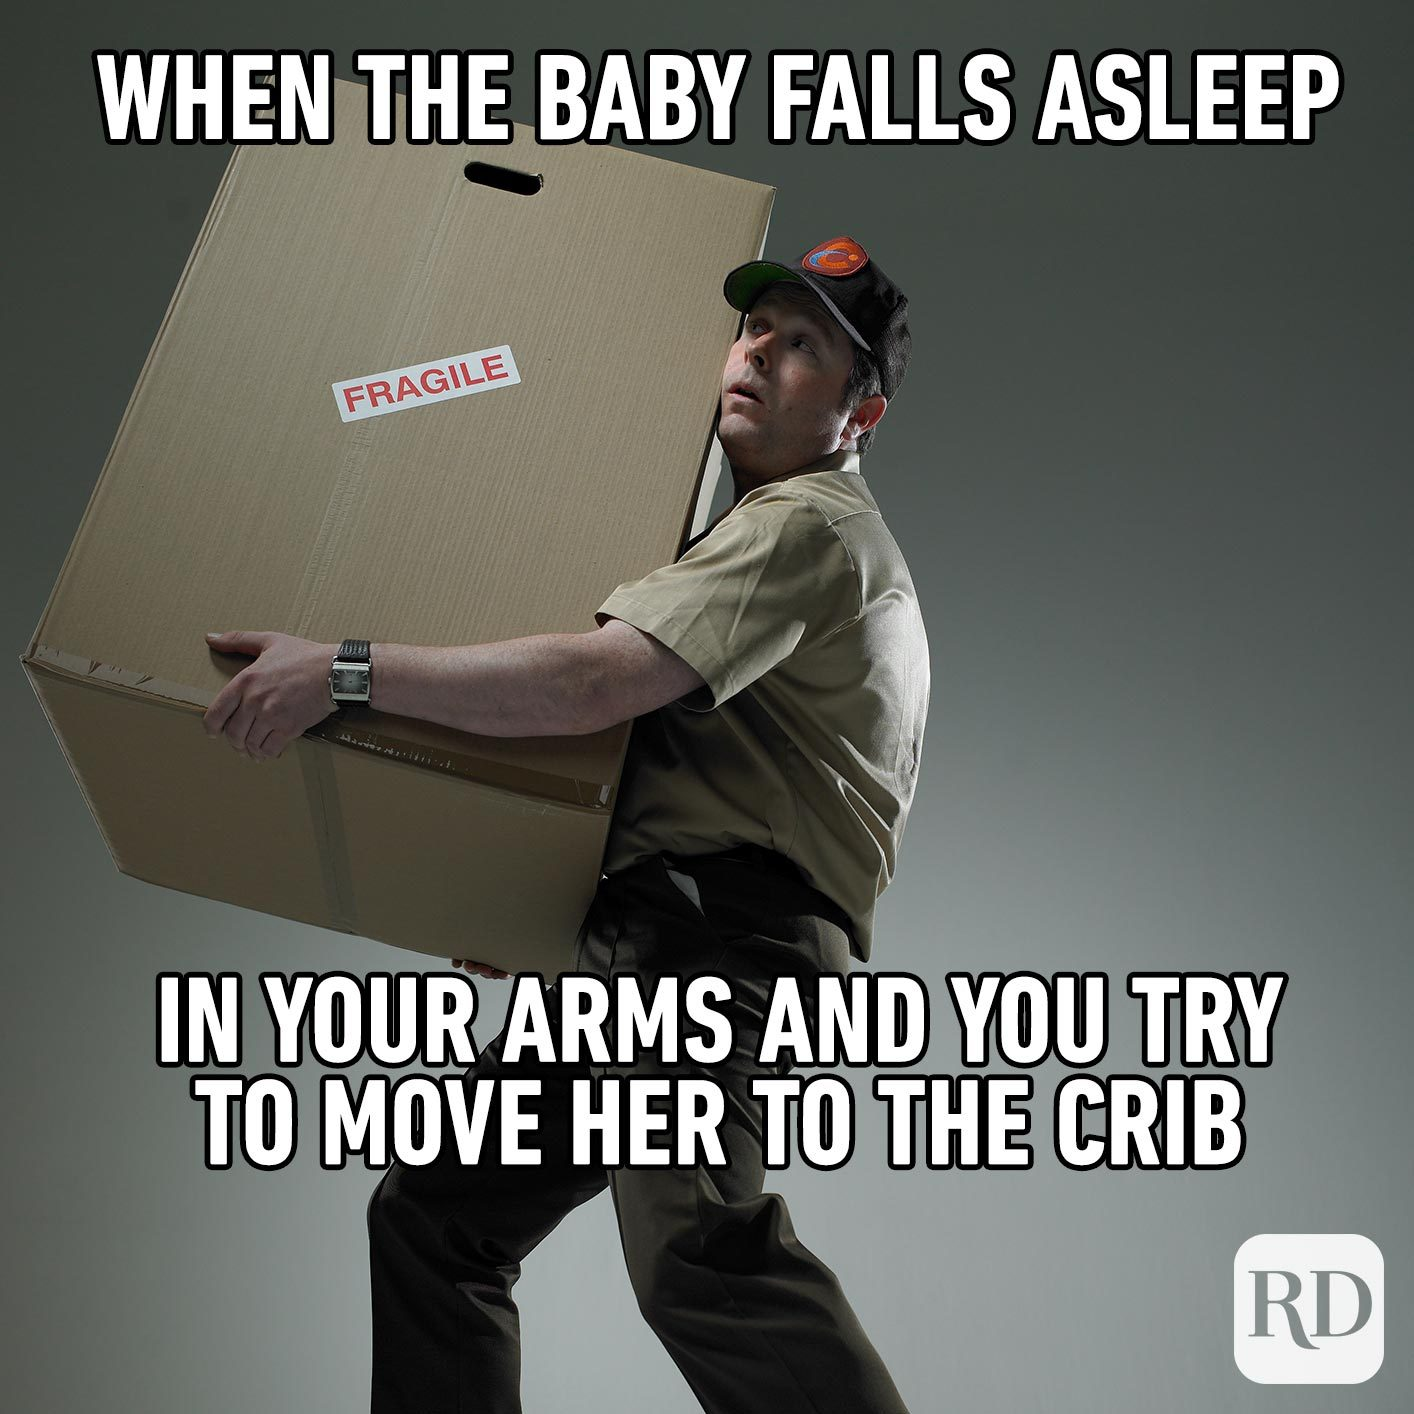 Delivery man holding large package. MEME TEXT: When the baby falls asleep in your arms and you try to move her to the crib